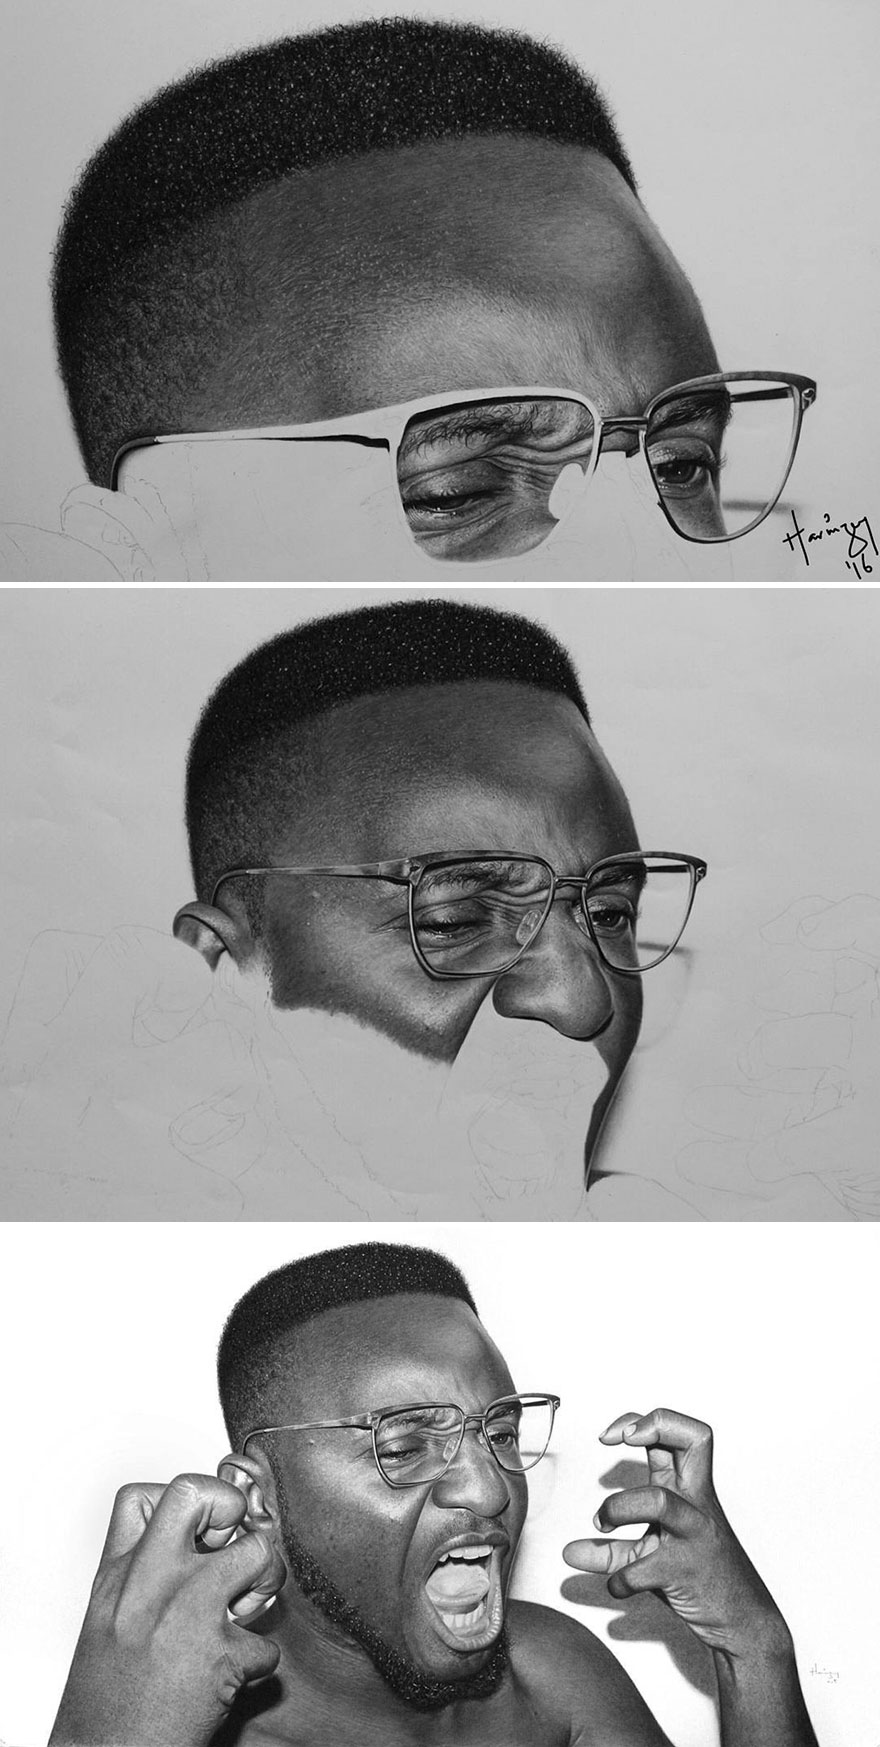 hyperrealism-pencil-portraits-arinze-stanley-9-58d28c1d4ade9__880-2